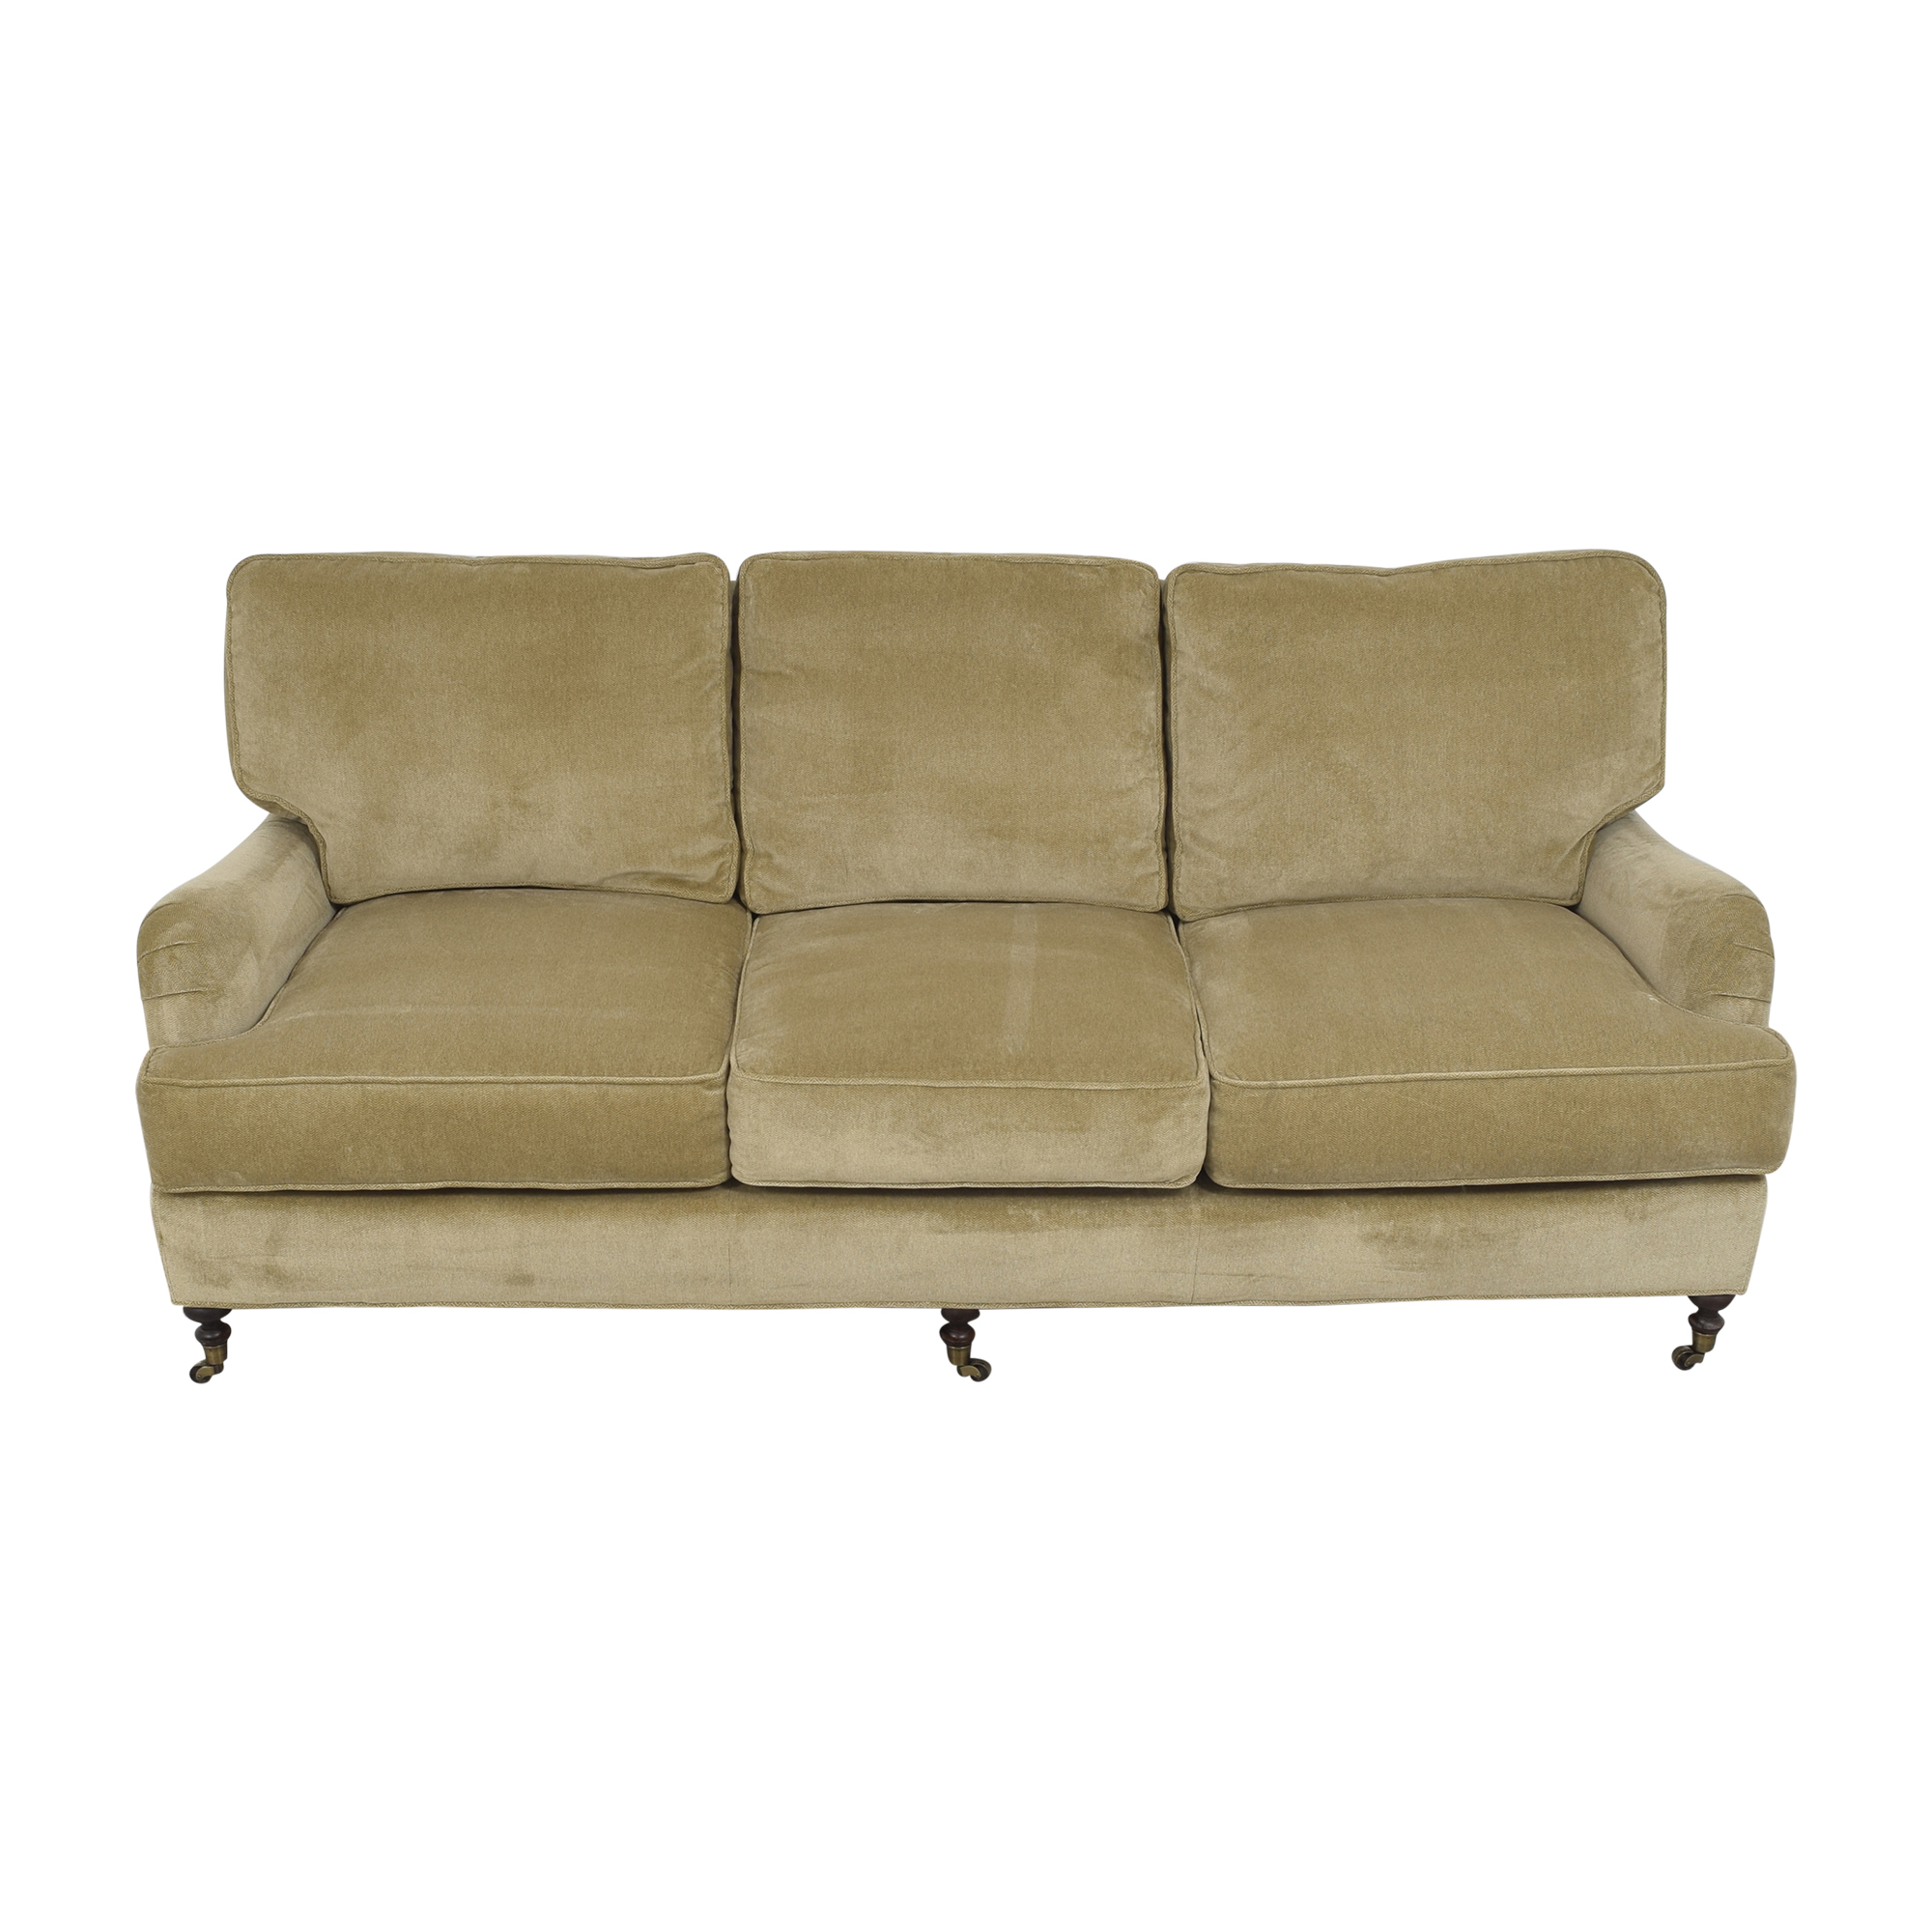 Lee Industries Lee Industries Three Cushion Sofa with Casters discount